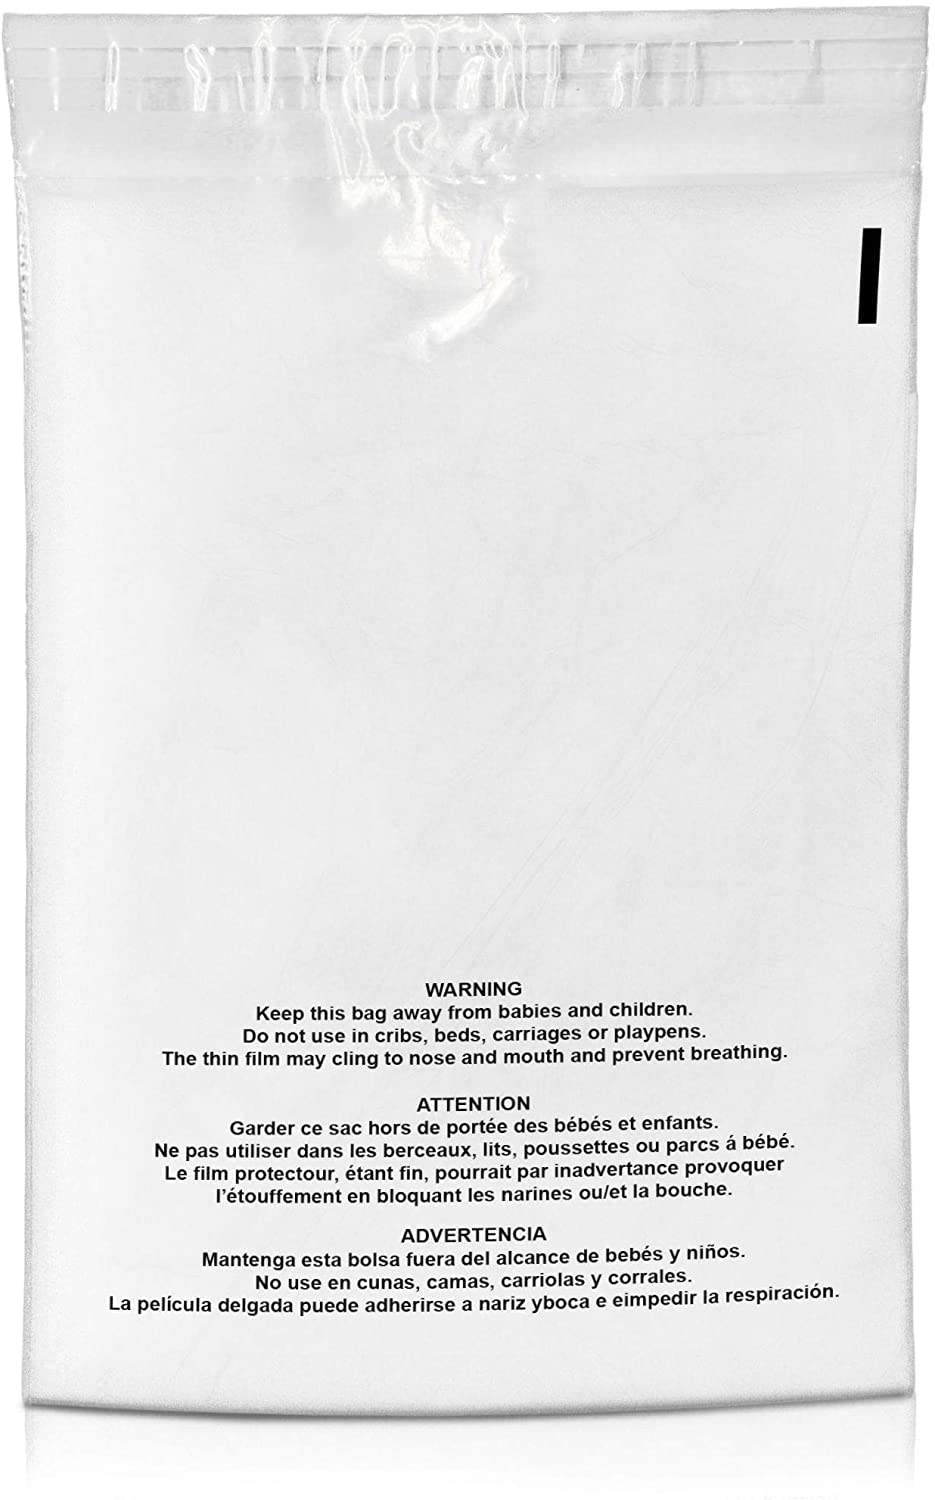 Shop4Mailers 19 x 24 Suffocation Warning Clear Plastic Self Seal Poly Bags 1.5 Mil (750 Pack)